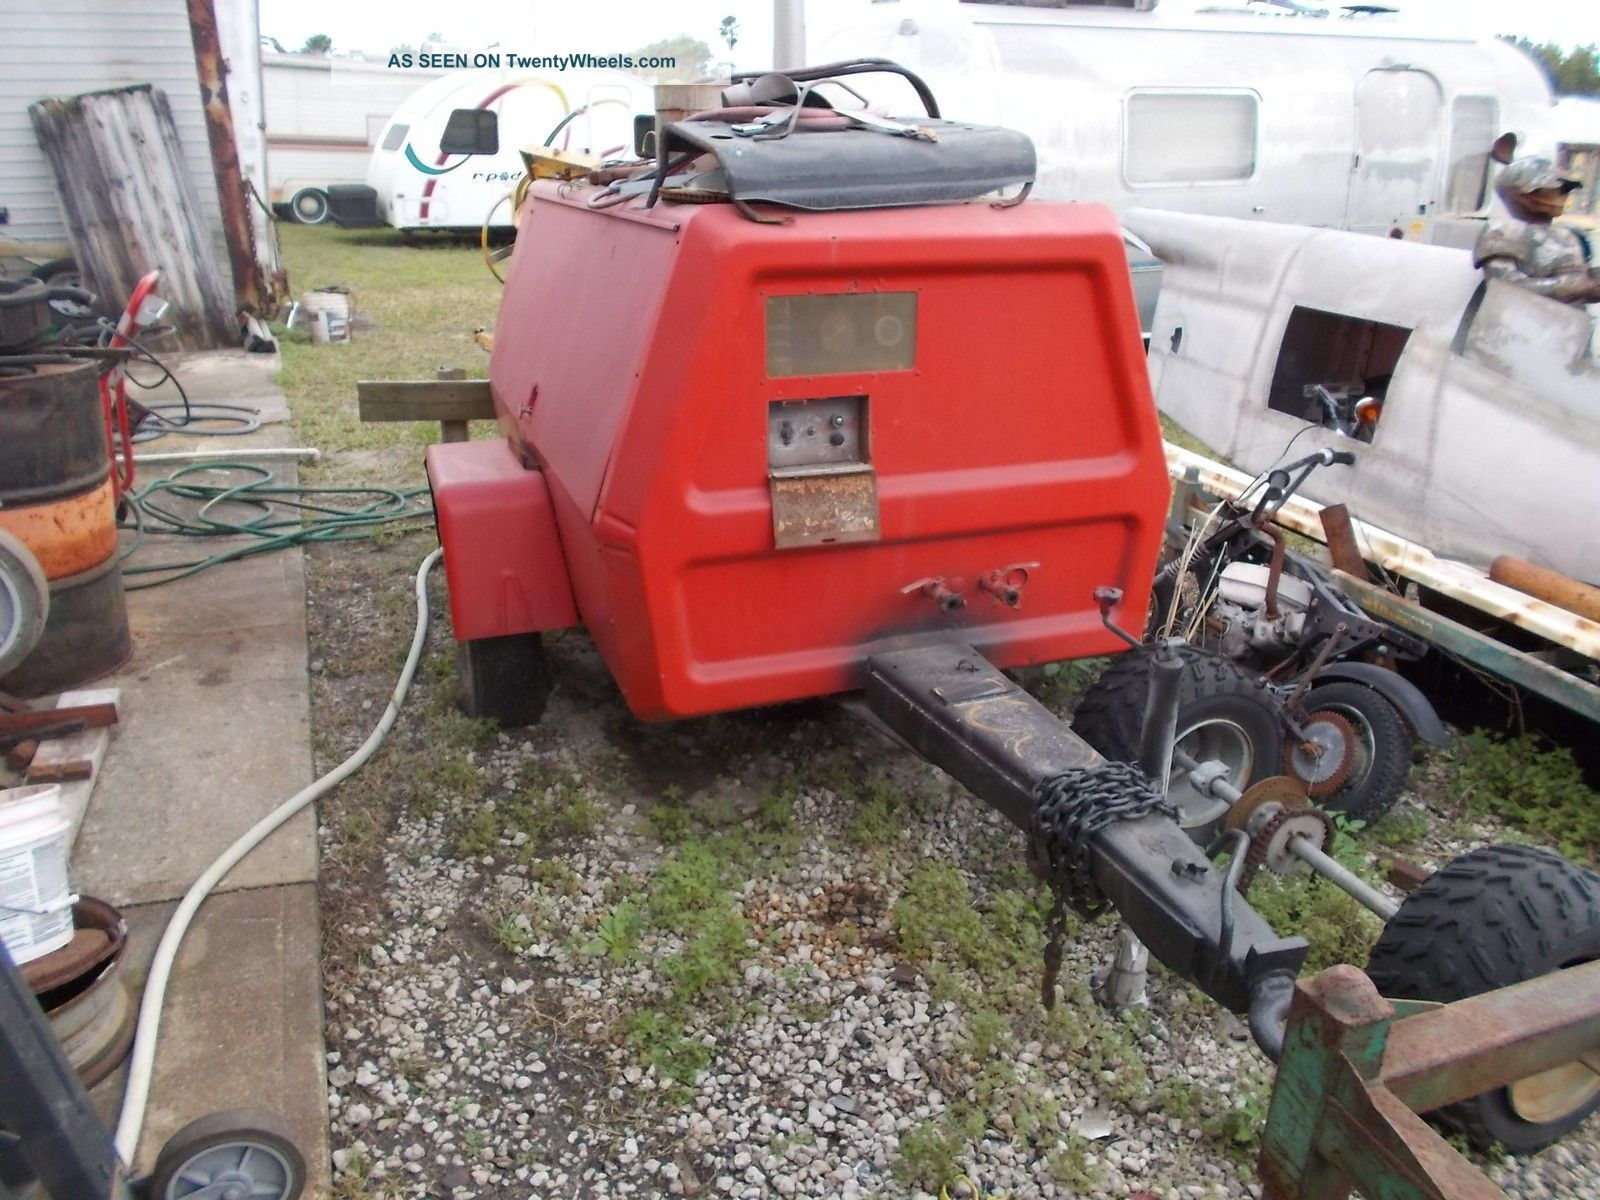 Ingersoll Rand 185 Diesel John Deere Compressor Other photo